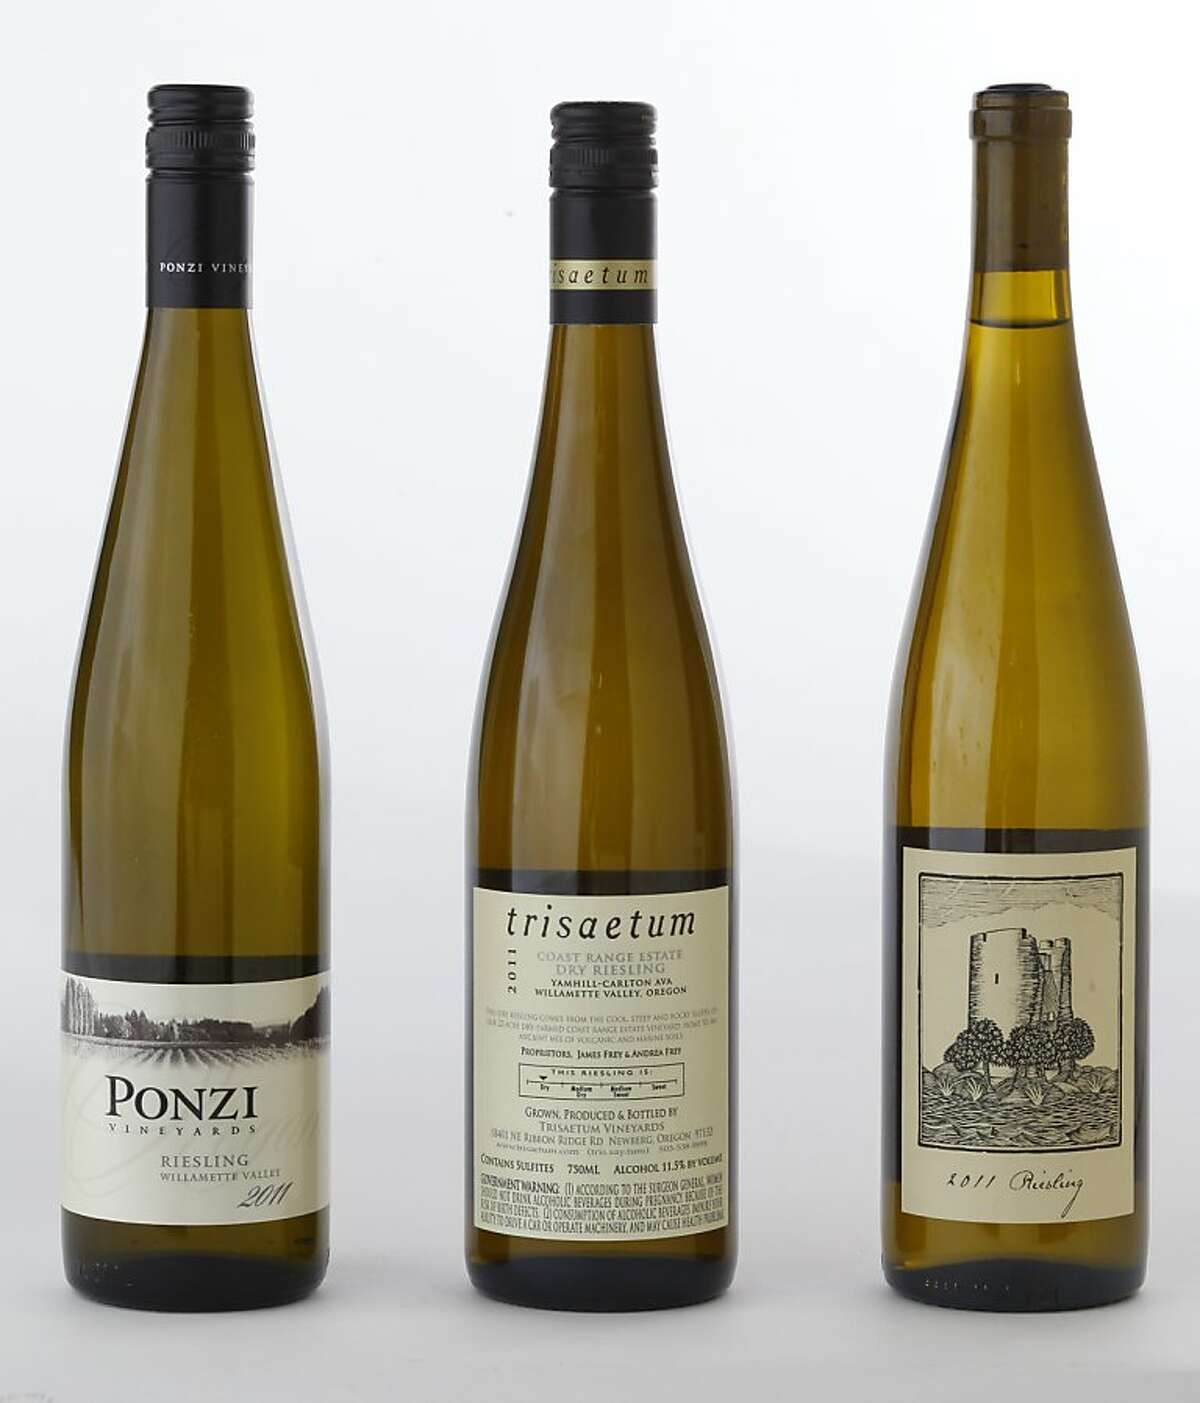 Left-right: 2011 Ponzi Willamette Valley Riesling, 2011 Owen Roe Yakima Valley Riesling, 2011 Trisaetum Coast Estate Yamhill-Carlton Dry Riesling as seen in San Francisco, California on Wednesday, March 20, 2013.